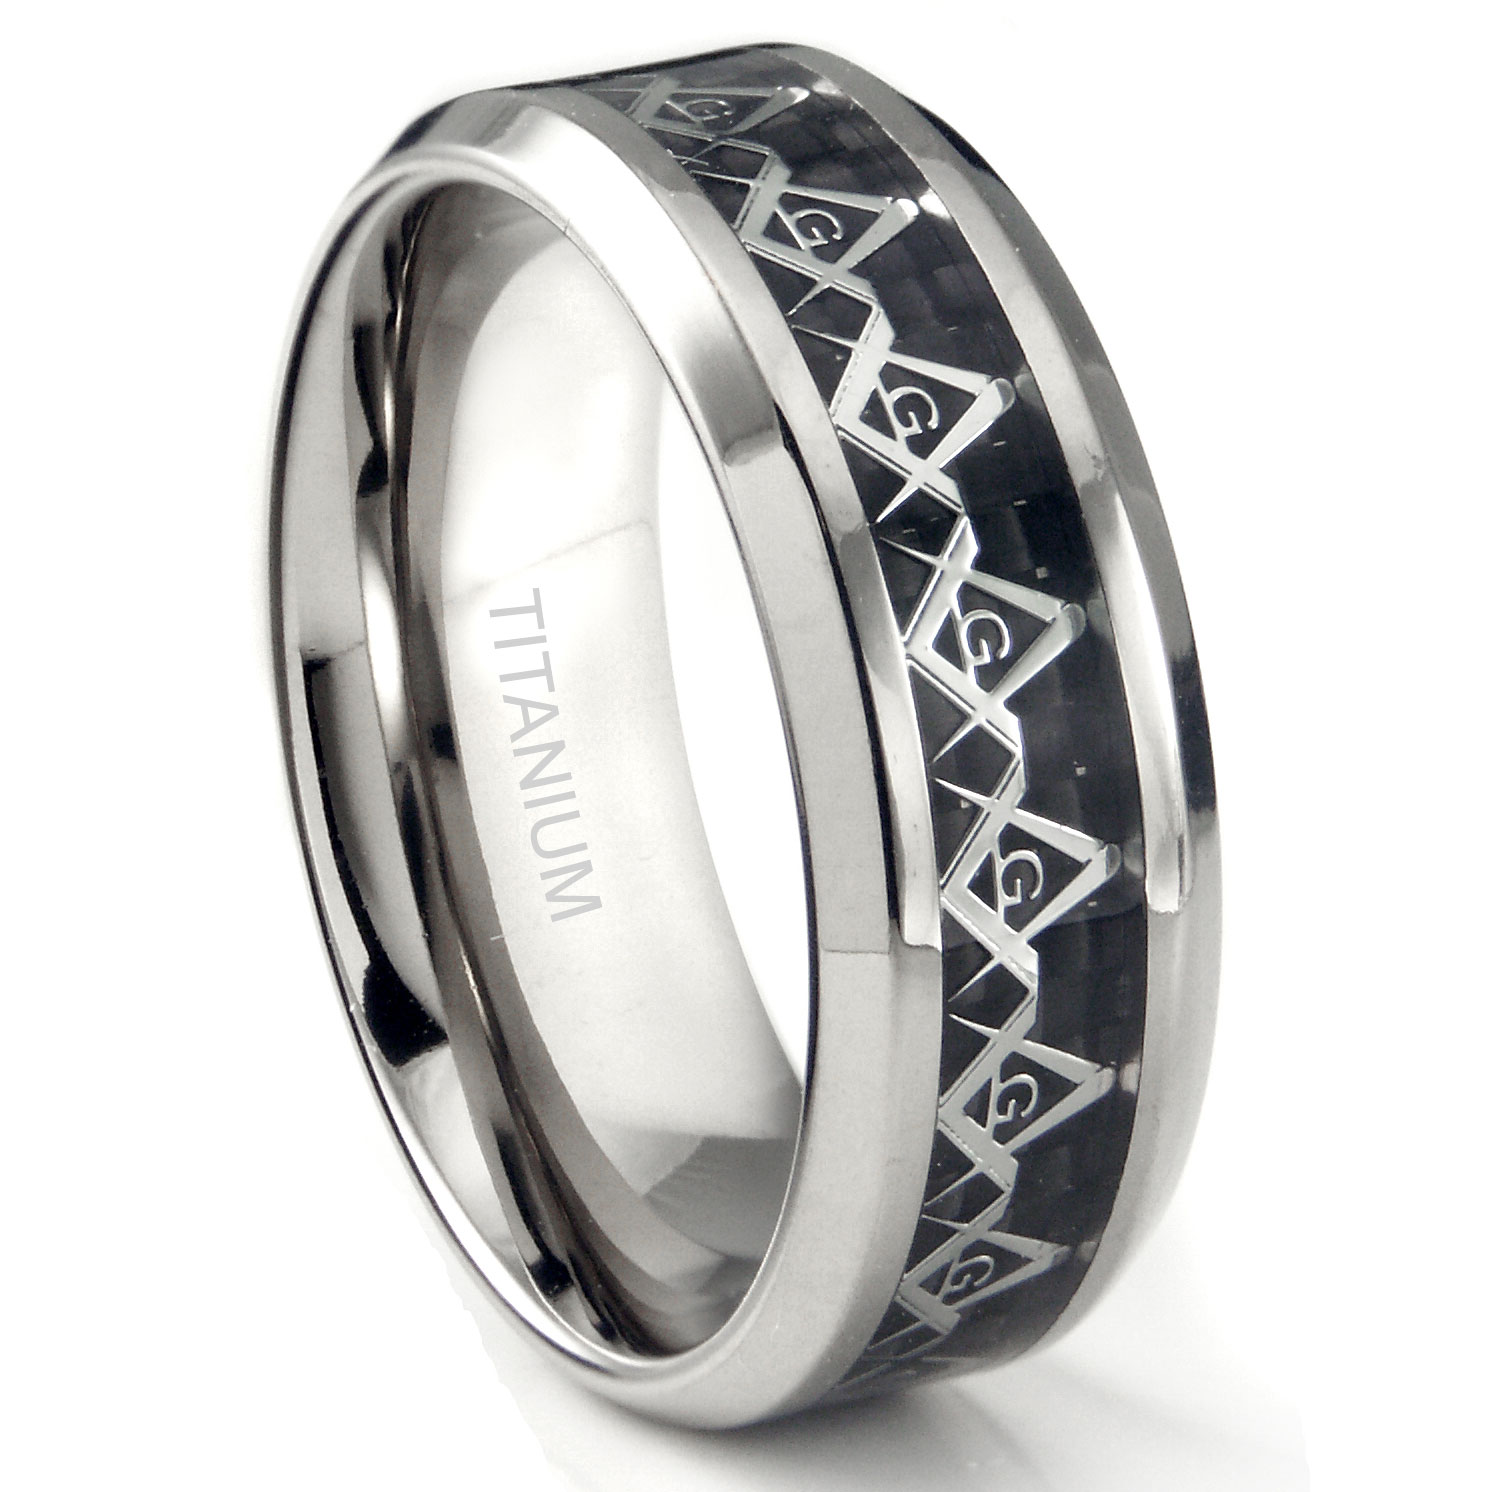 rings theclassics hands wedding ring carbon titanium inlay honest fiber co